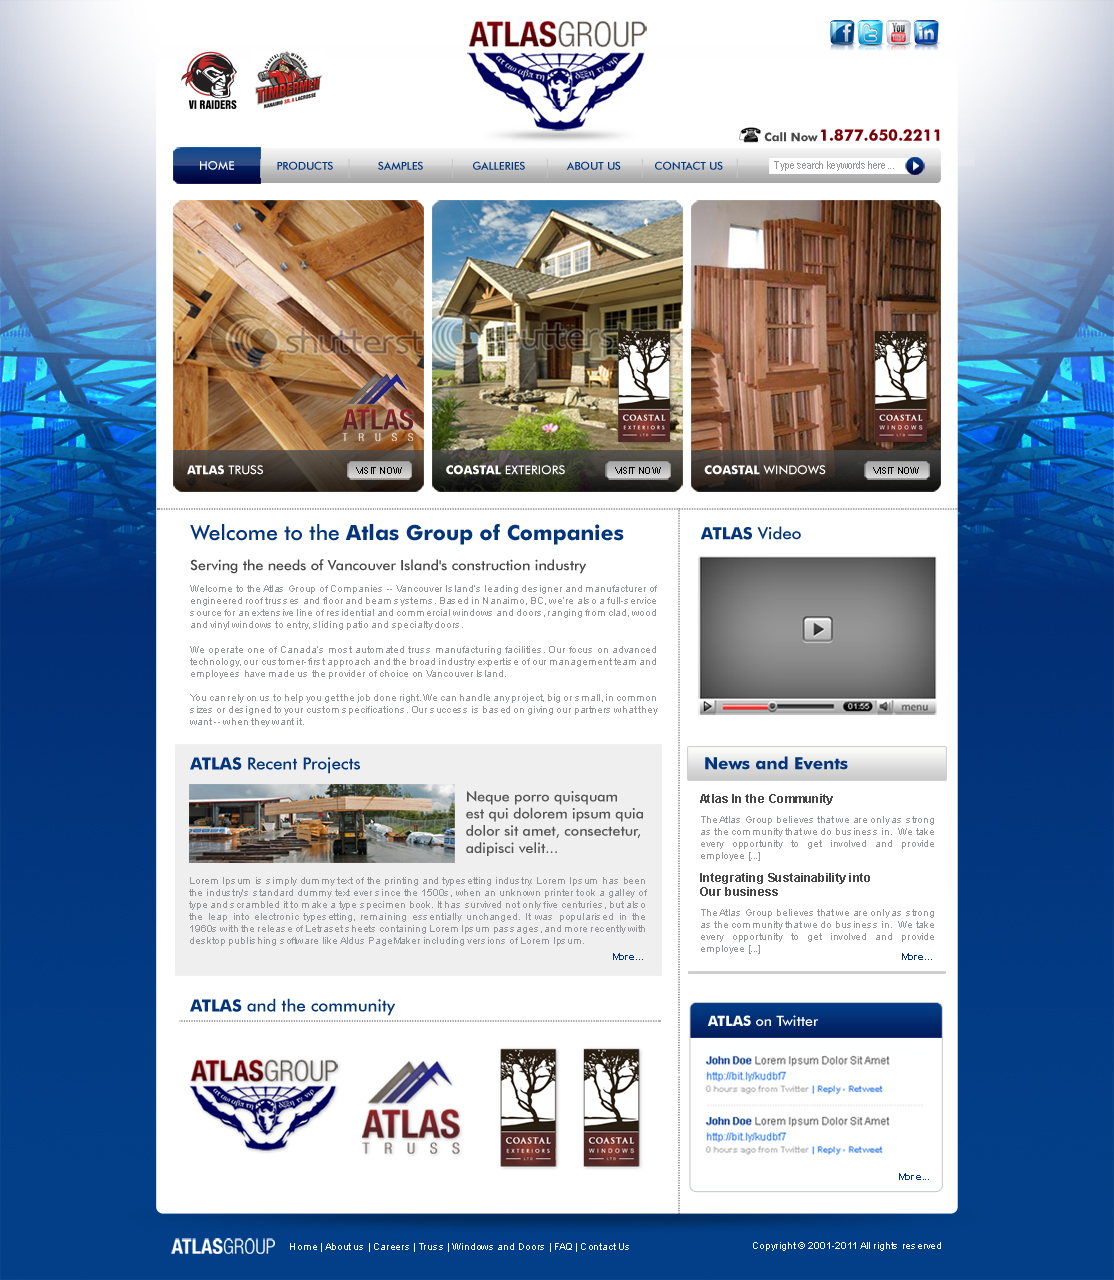 Web Page Design by ArsalanHanif - Entry No. 17 in the Web Page Design Contest The Atlas Group Website.